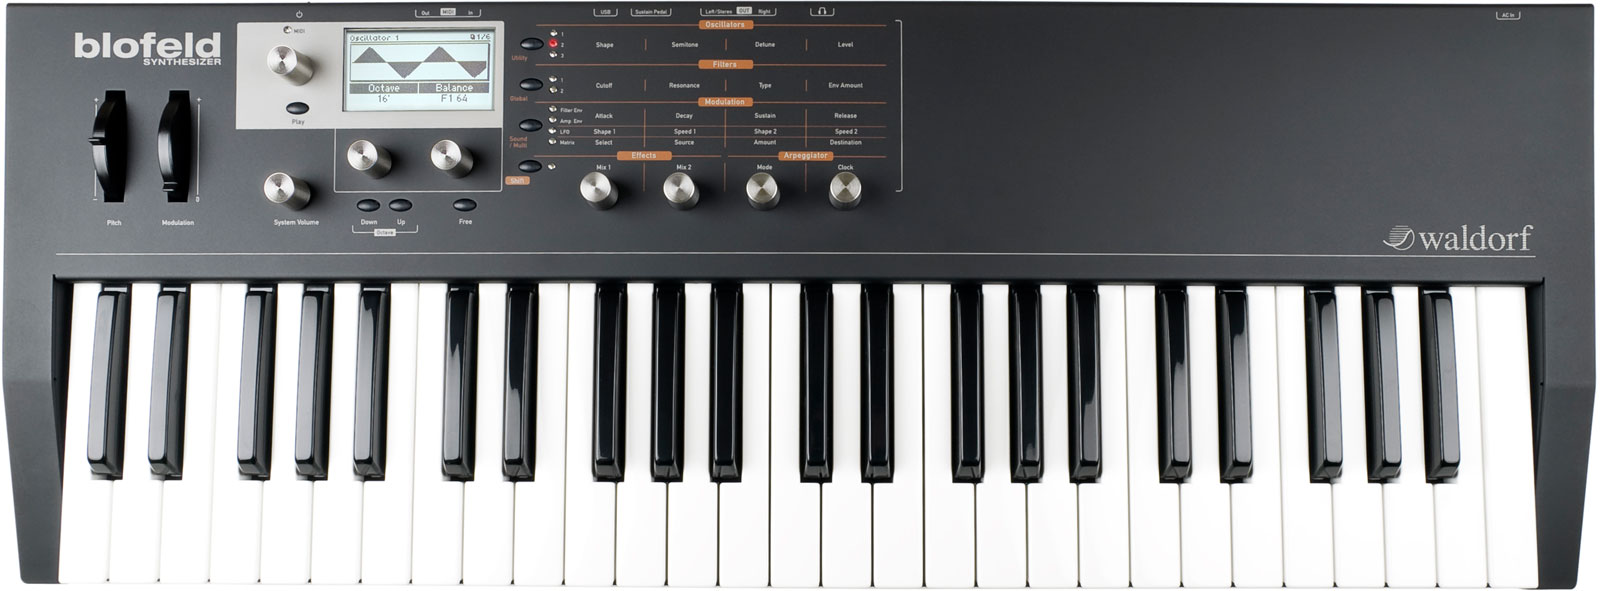 http://medias.audiofanzine.com/images/normal/waldorf-blofeld-keyboard-black-edition-451116.jpg